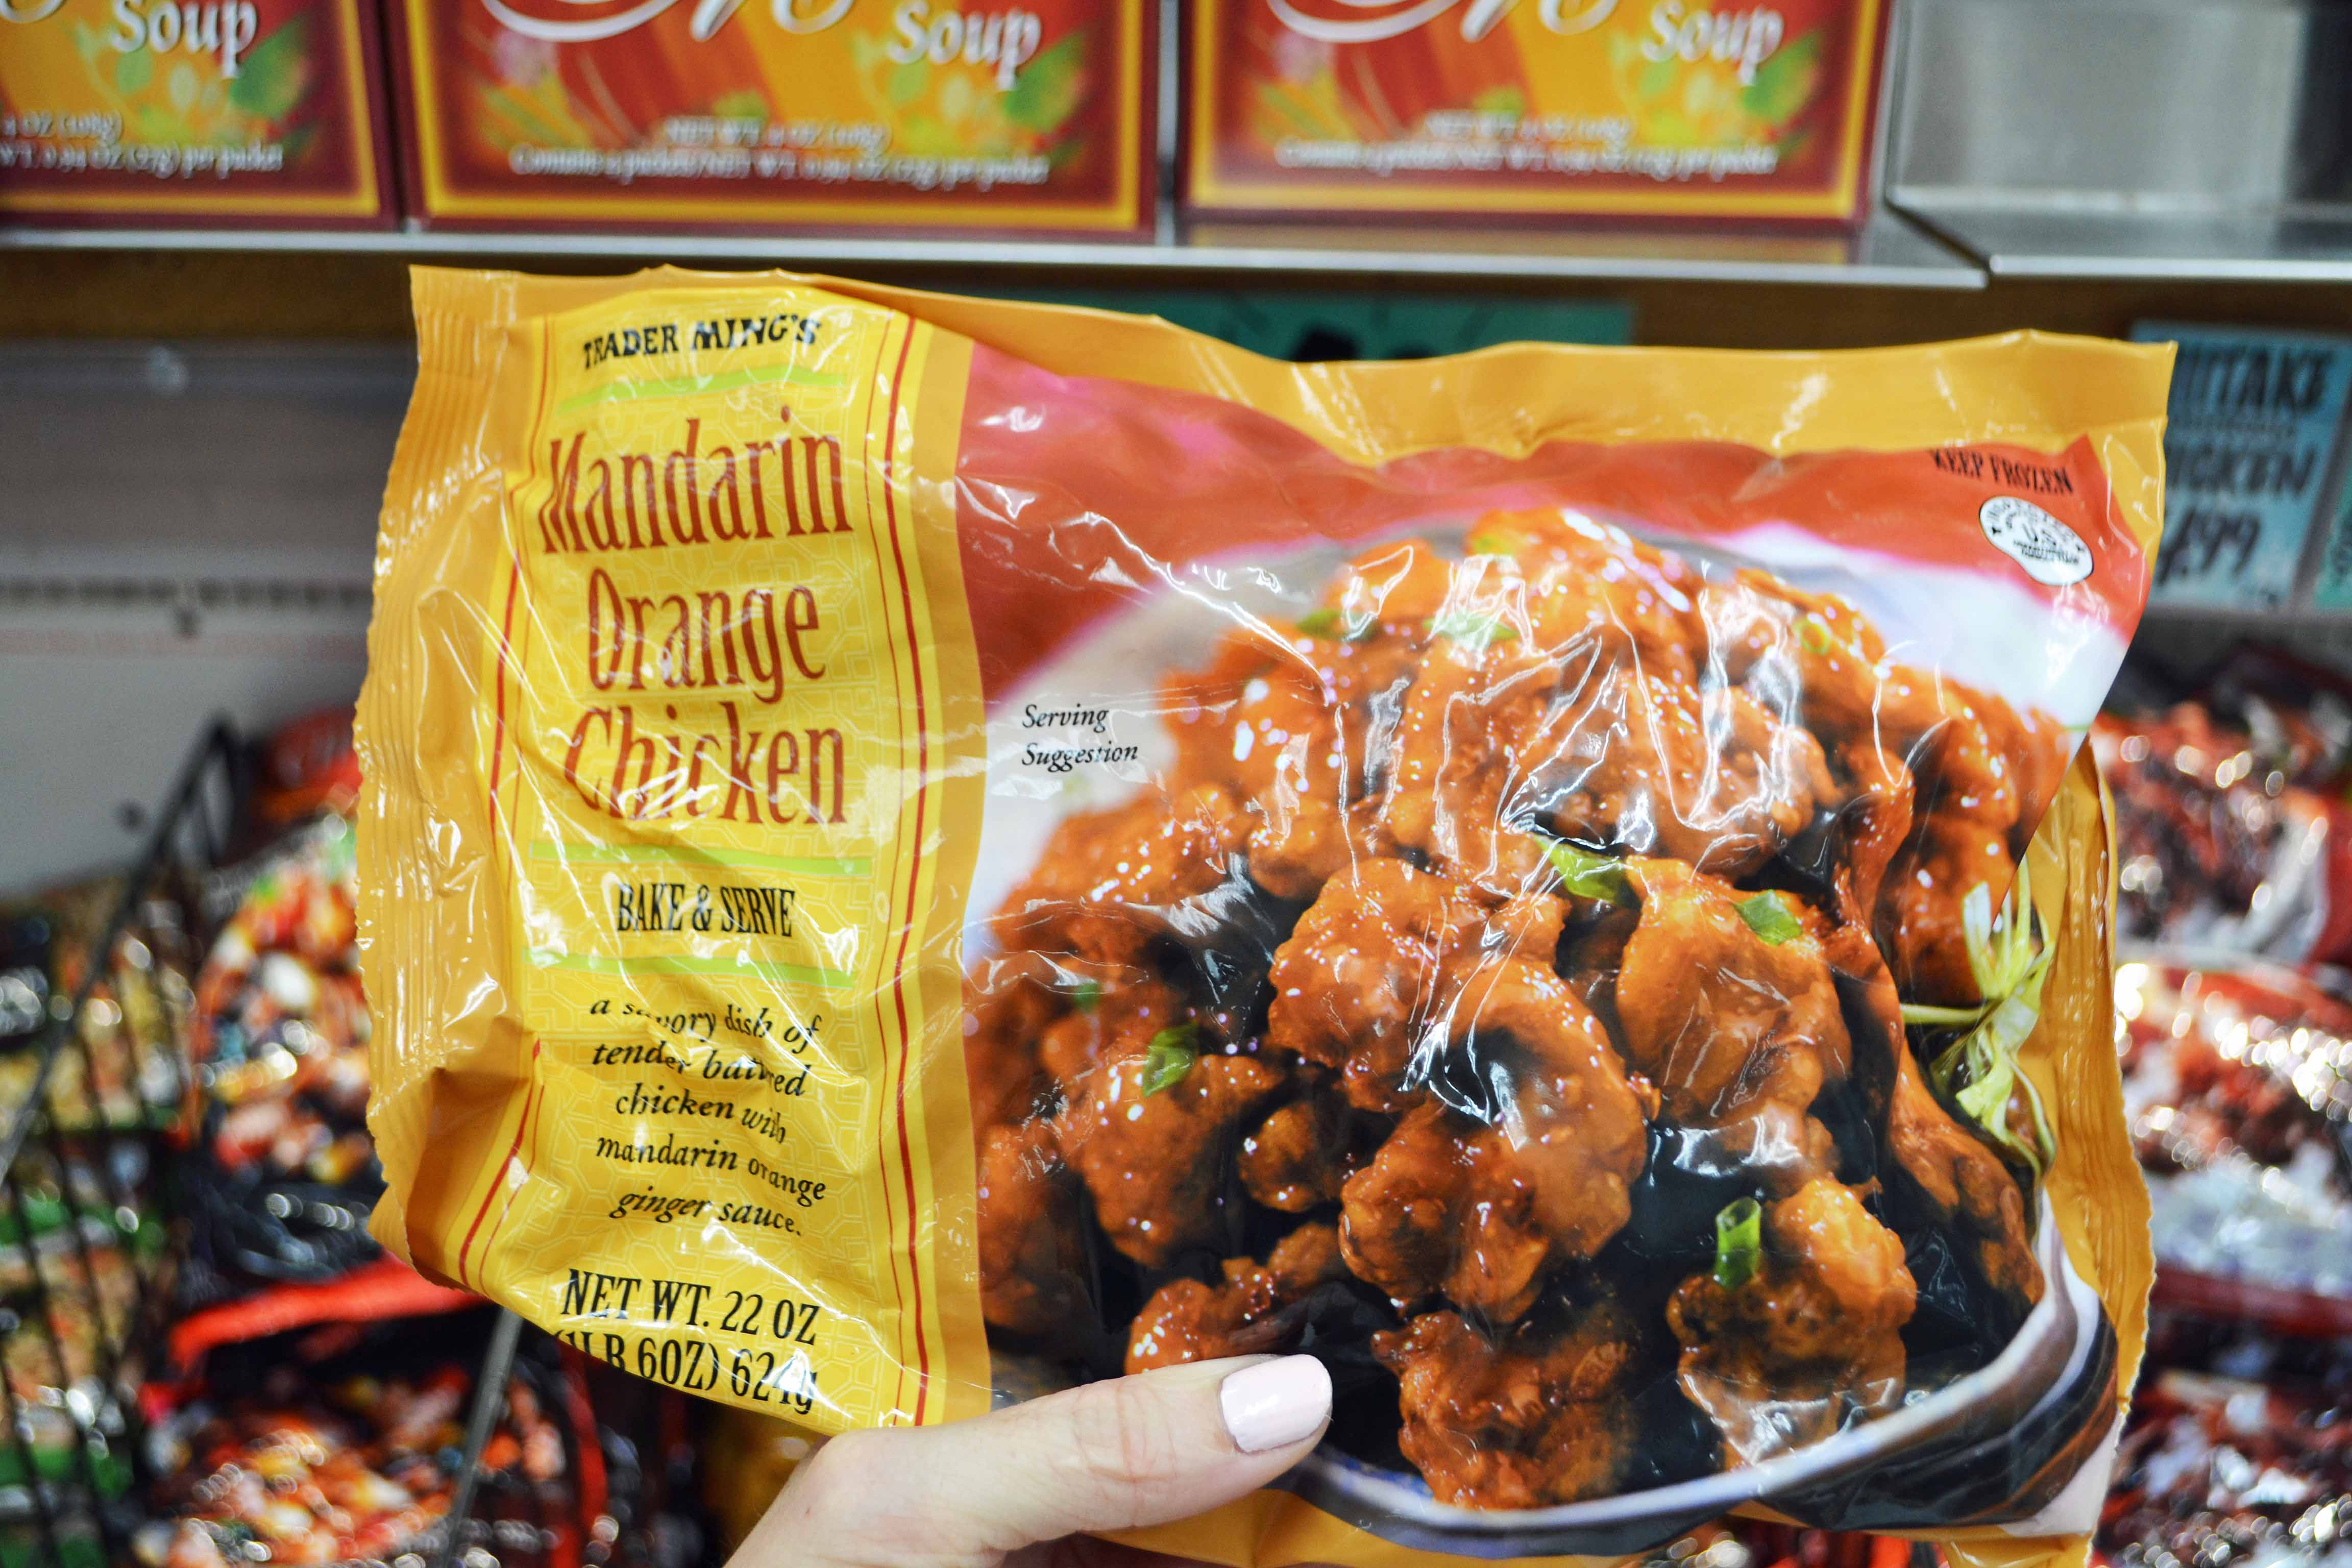 Best Items to Buy at Trader Joe's. The list includes the most popular items, employee favorites, and great deals.